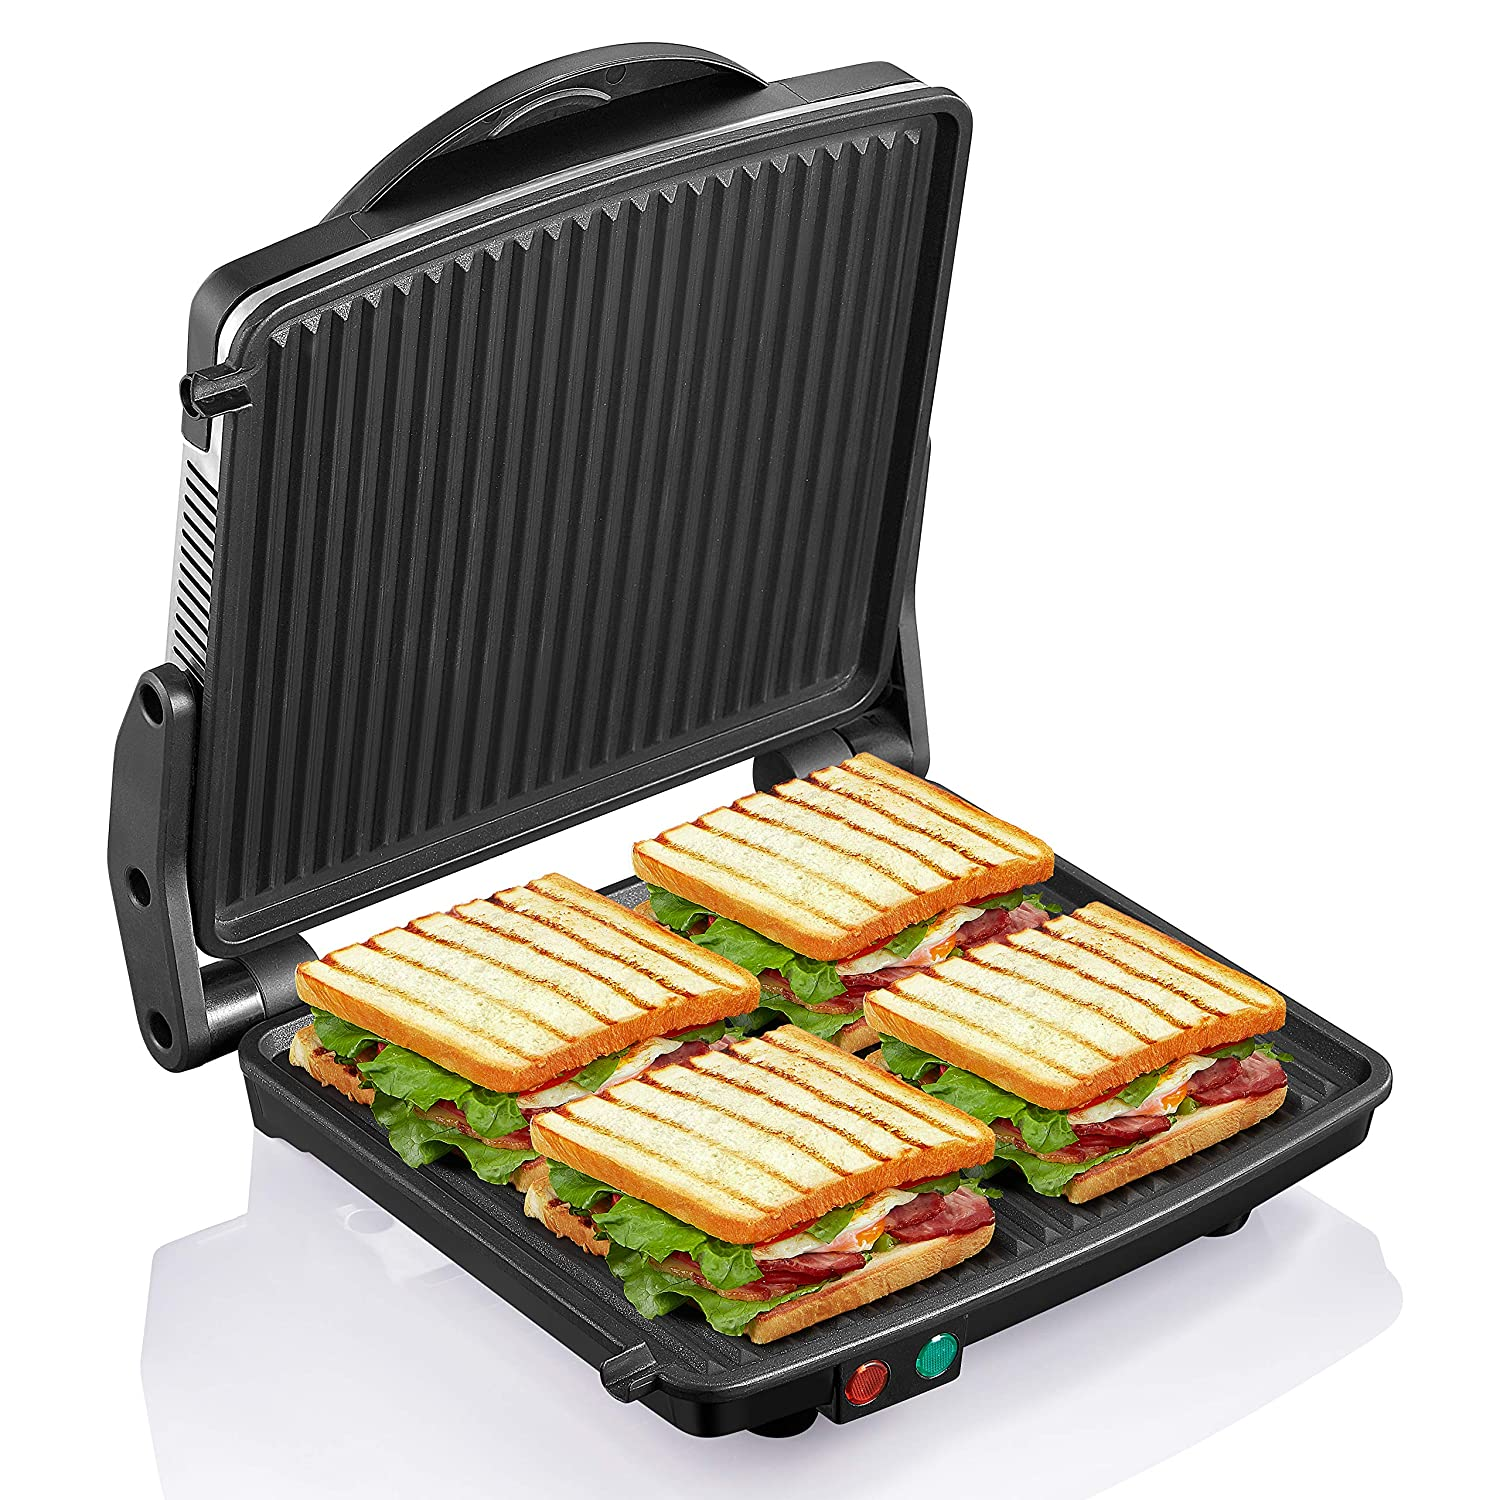 "Panini Press Grill, Yabano Gourmet Sandwich Maker Non-Stick Coated Plates 11"" x 9.8"", Opens 180 Degrees to Fit Any Type or Size of Food, Stainless Steel Surface and Removable Drip Tray, 4 Slice"